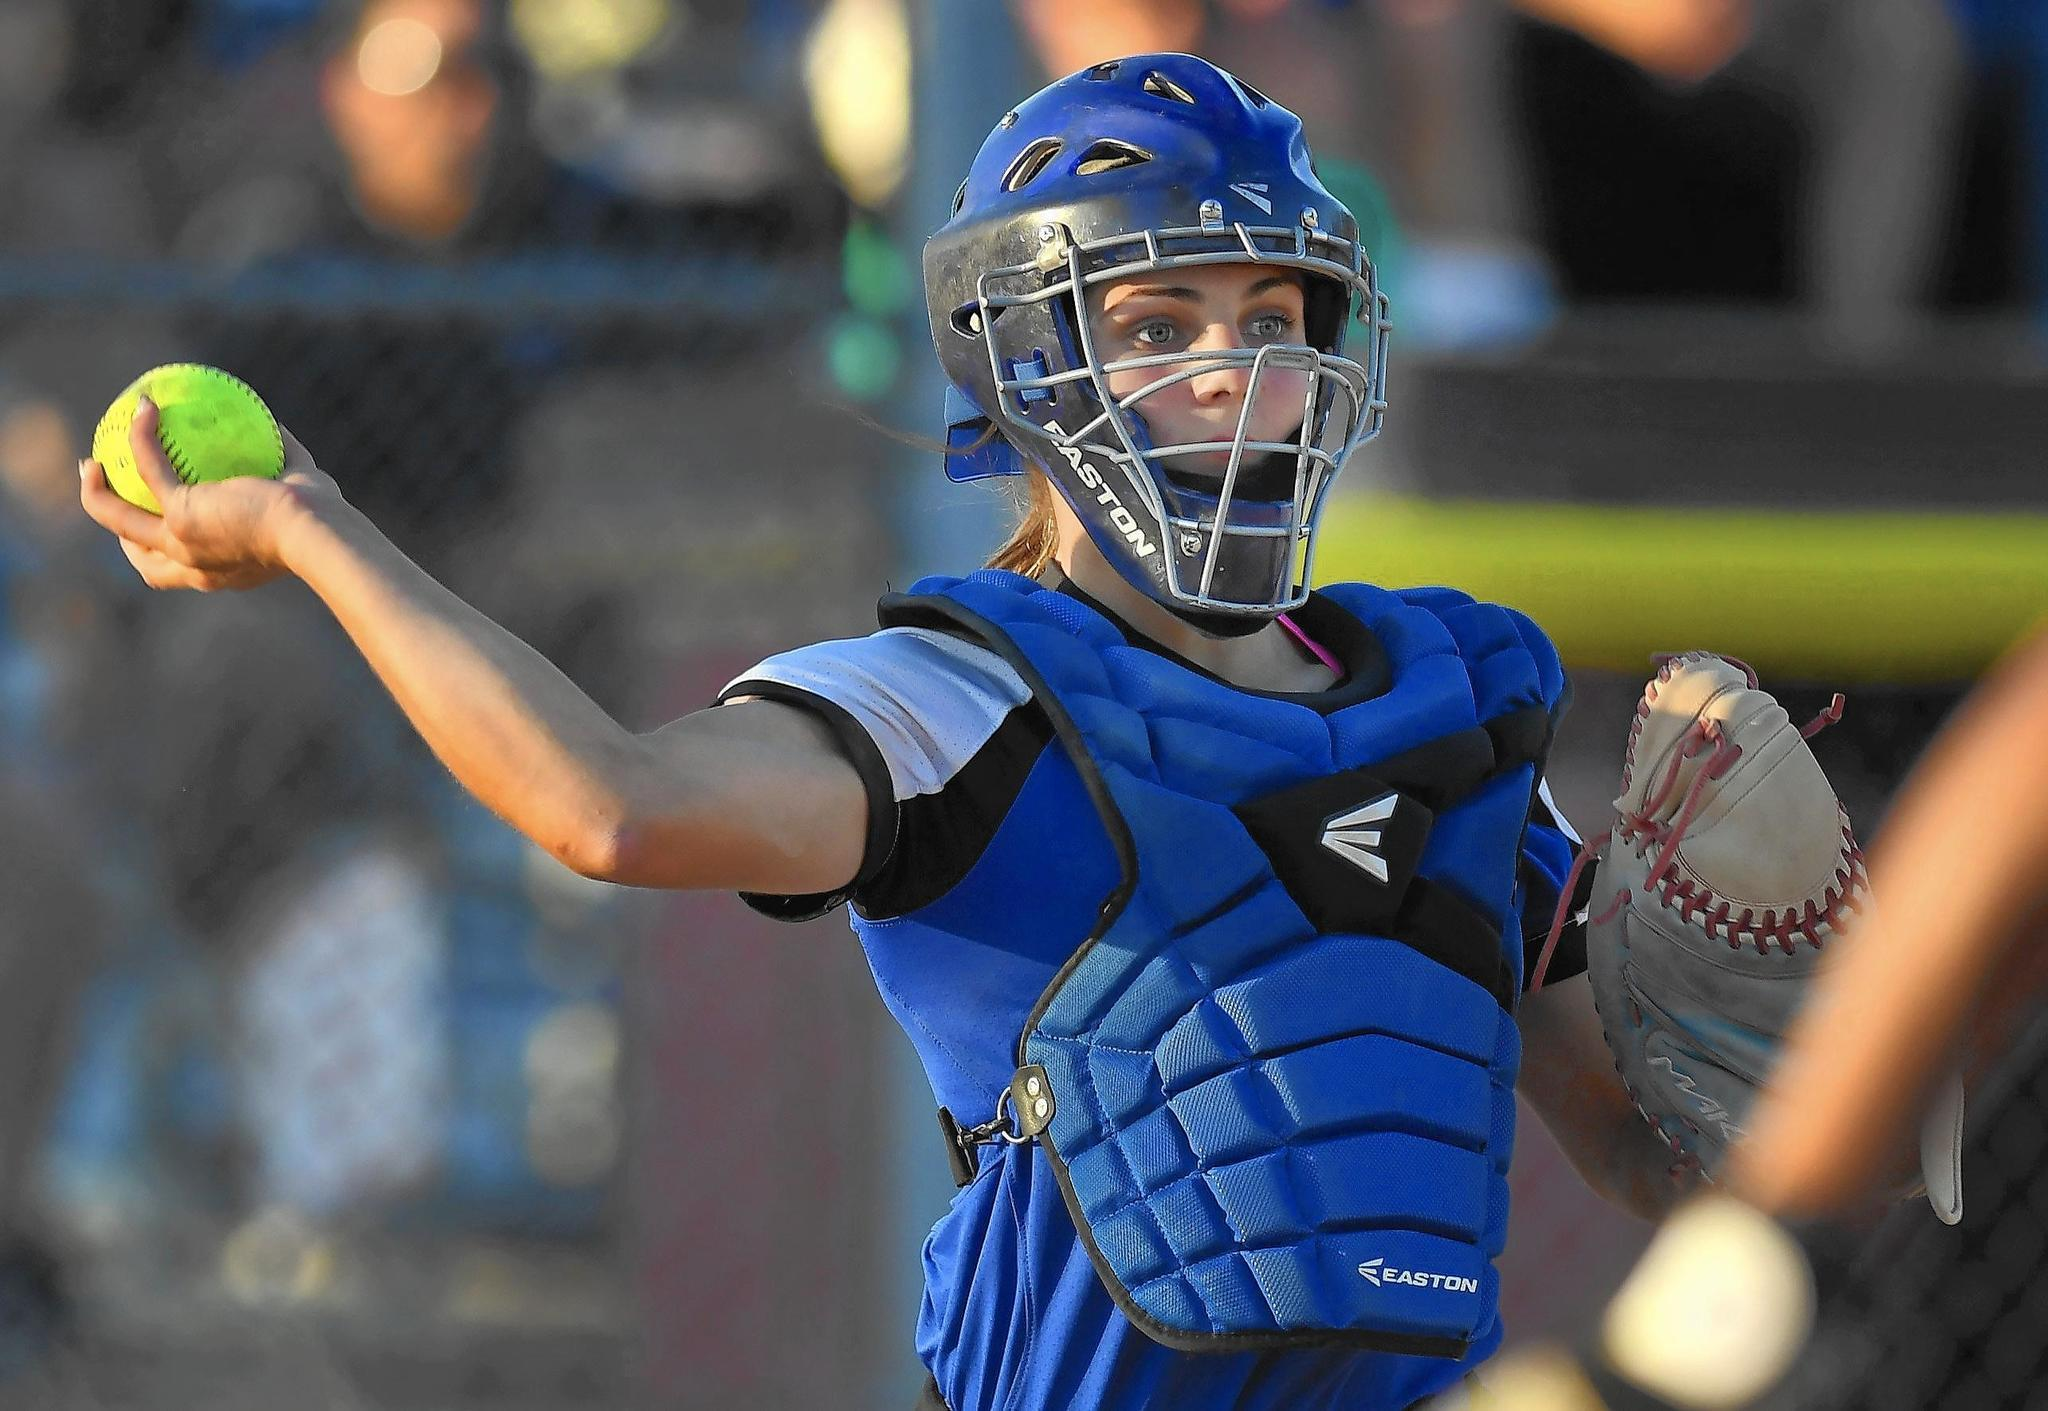 Lincoln Way East Falls In Class 4a State Final On Late